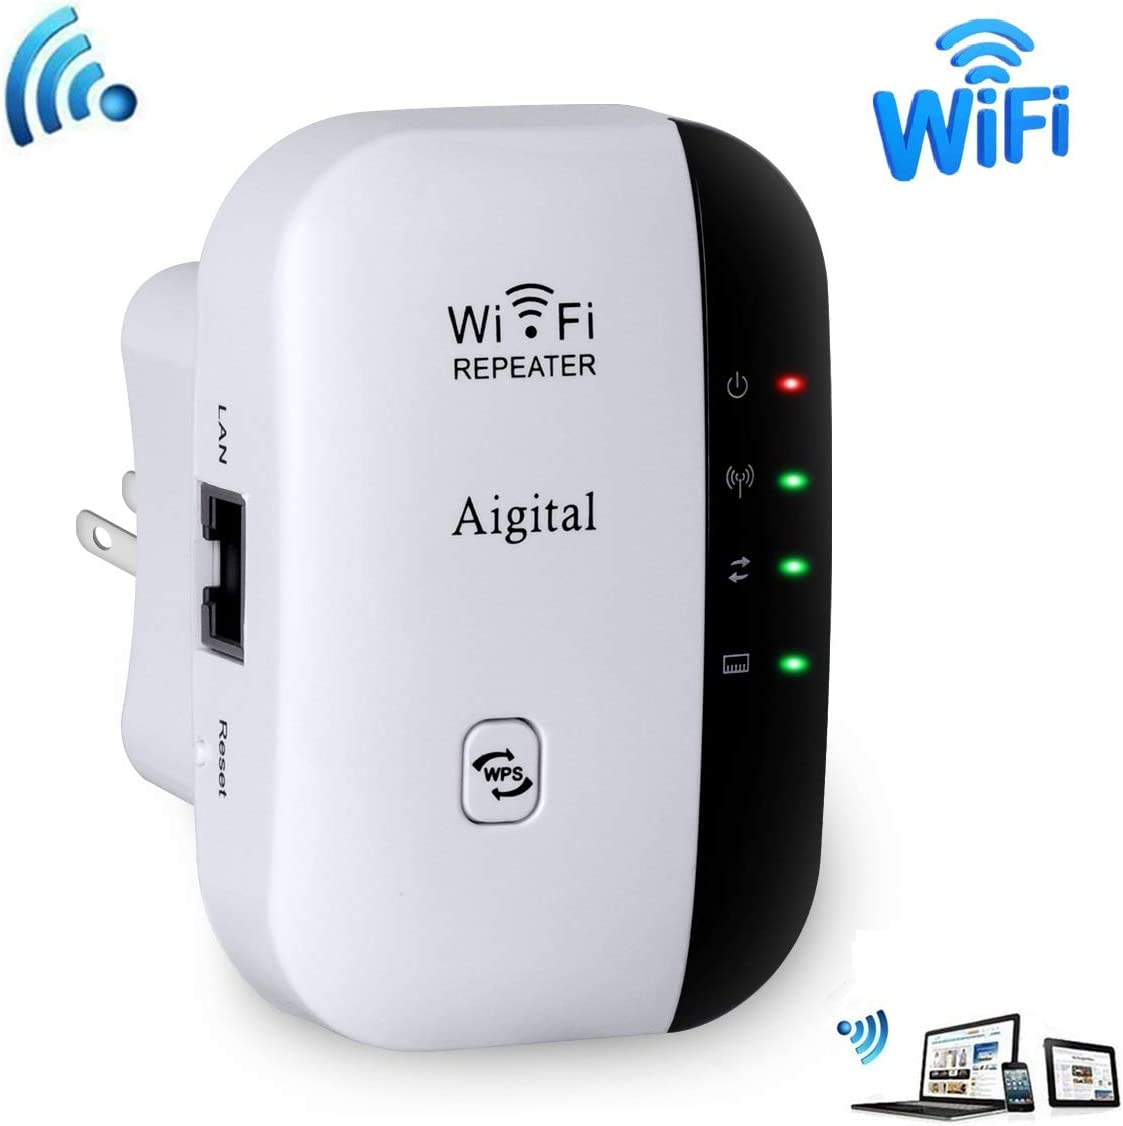 Aigital WiFi Extender 300 Mbps Wireless Repeater Internet Signal Range Booster Adapter, Easy Setup WLAN Network Amplifier Access Point Dongle WiFi Blast - 2.4GHz WPS Function New Chip